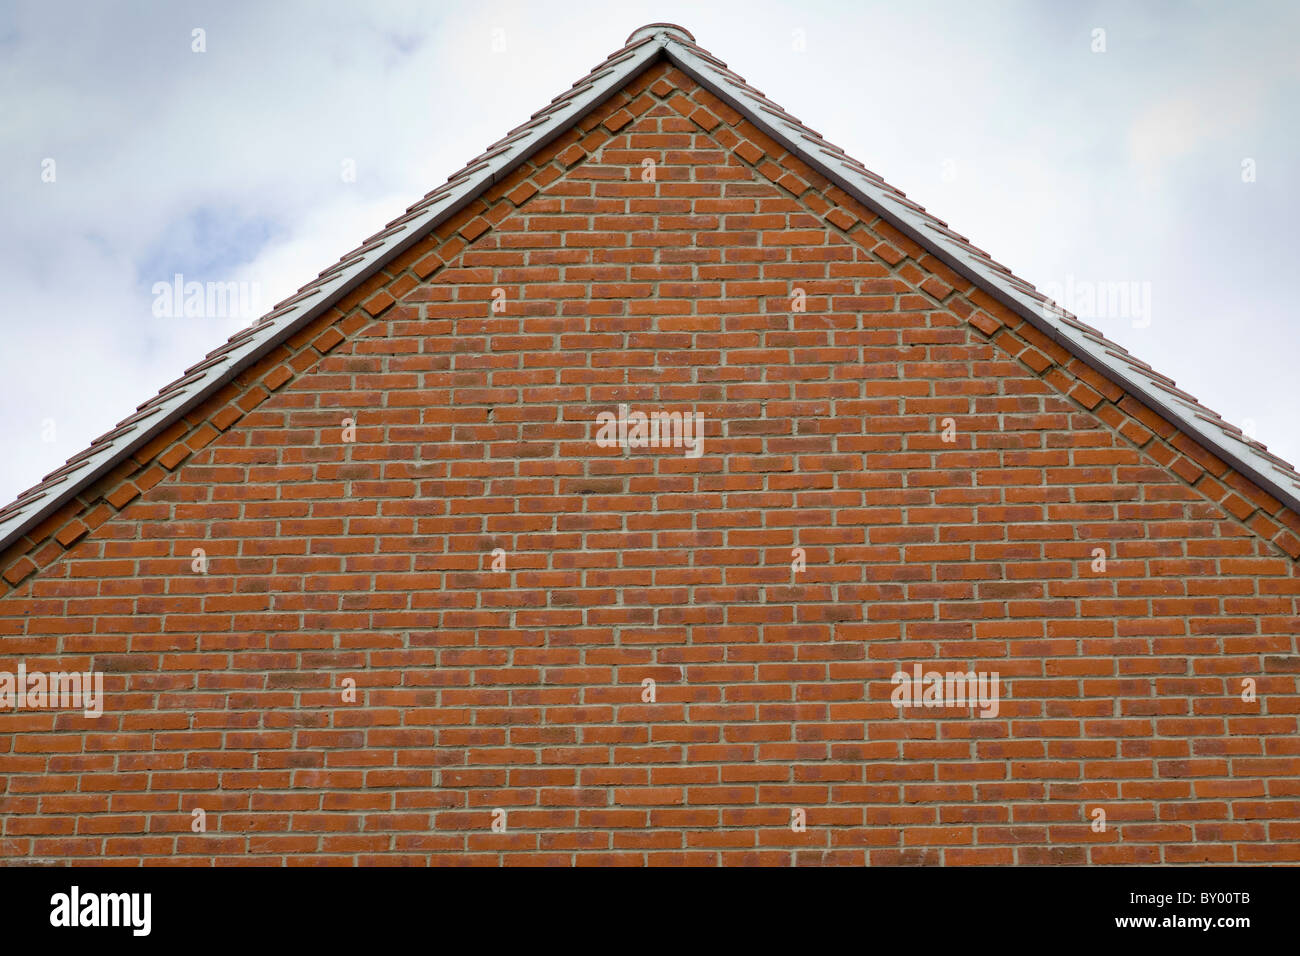 brick building gable end stock photos brick building